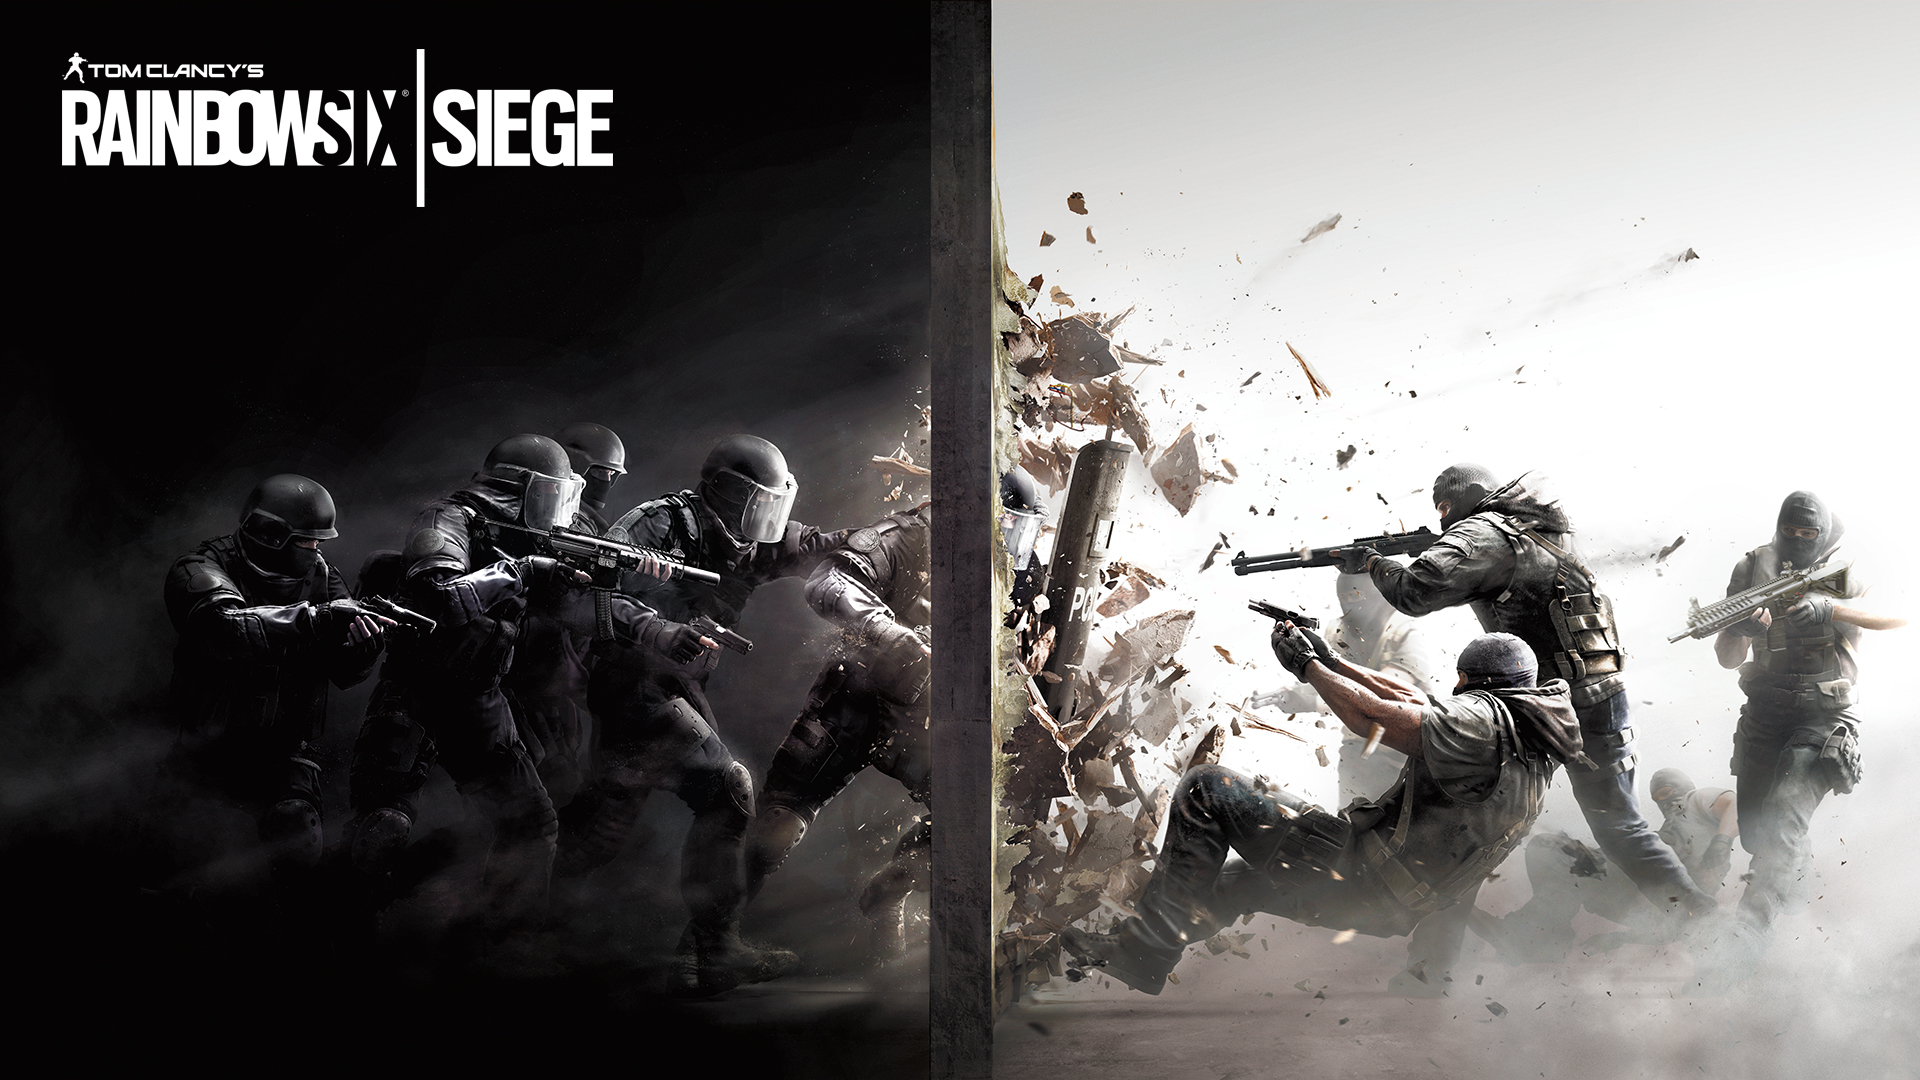 A Rainbow Six Siege free weekend is coming later this month